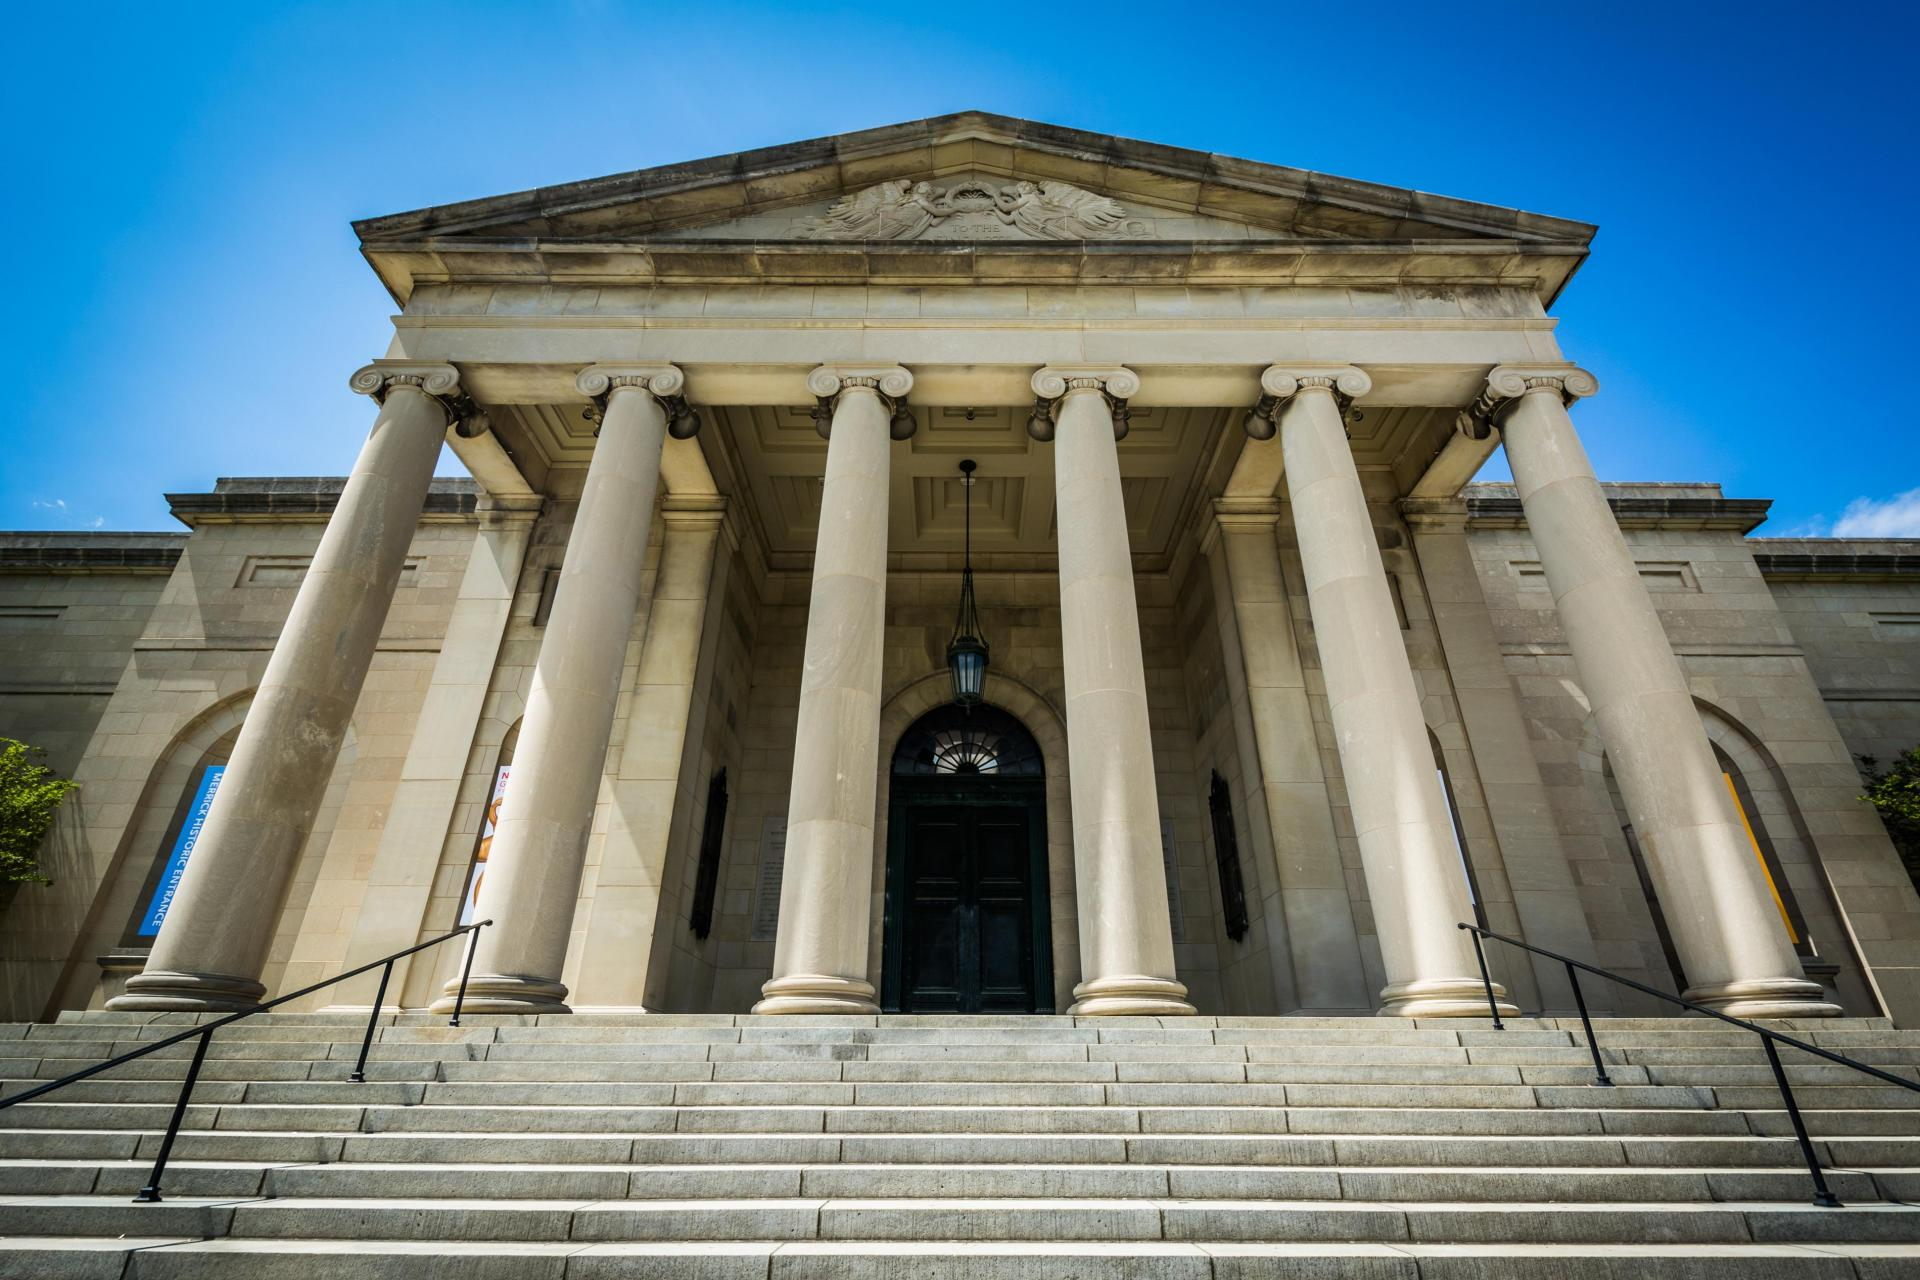 The Baltimore Museum of Art which hoped to raise $65 million by selling three major works including a Warhol. Photo: Shutterstock.com